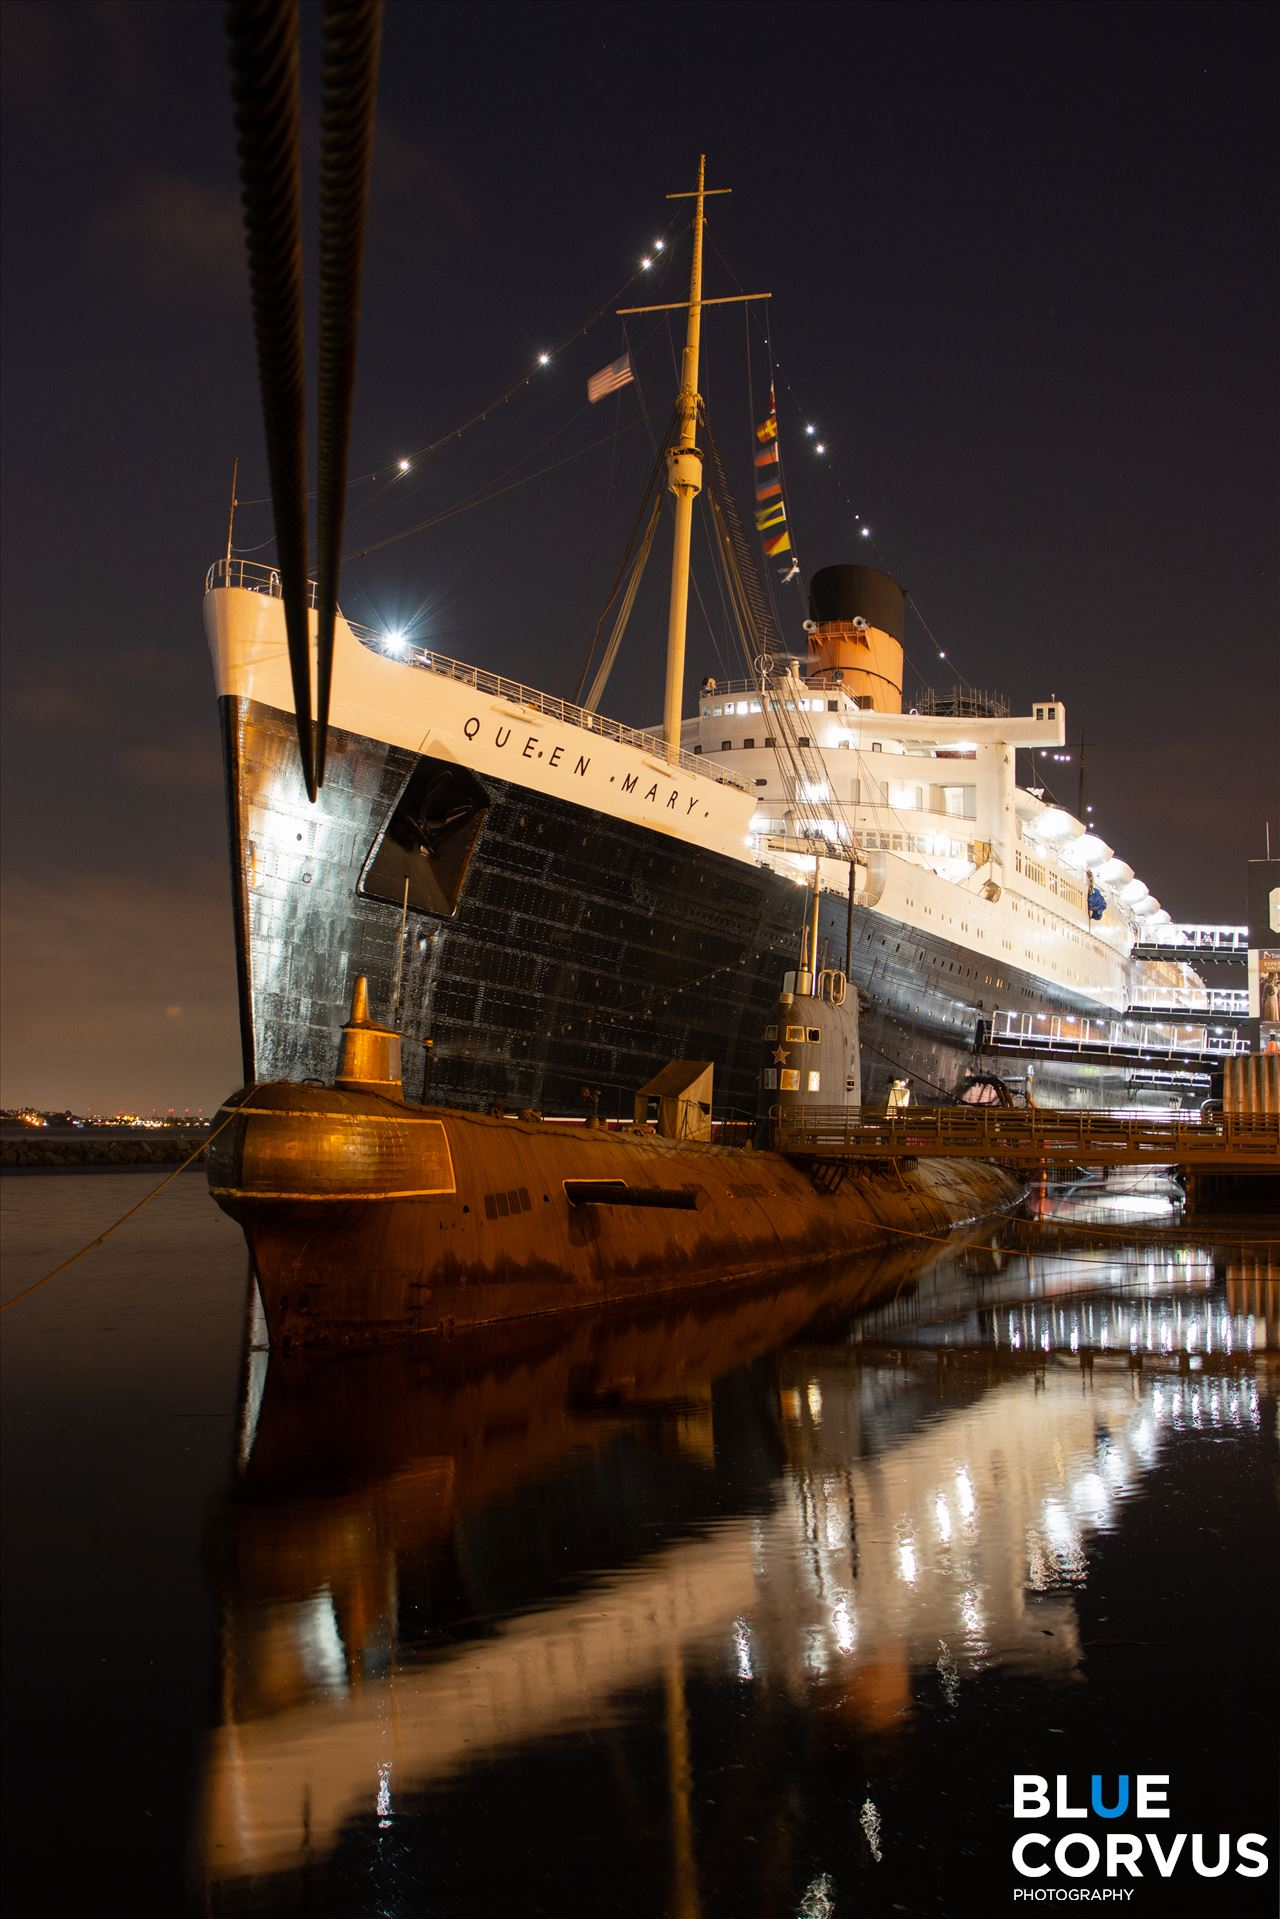 \x22A Trip Across Time, The Queen Mary\x22 -  by Eddie Zamora